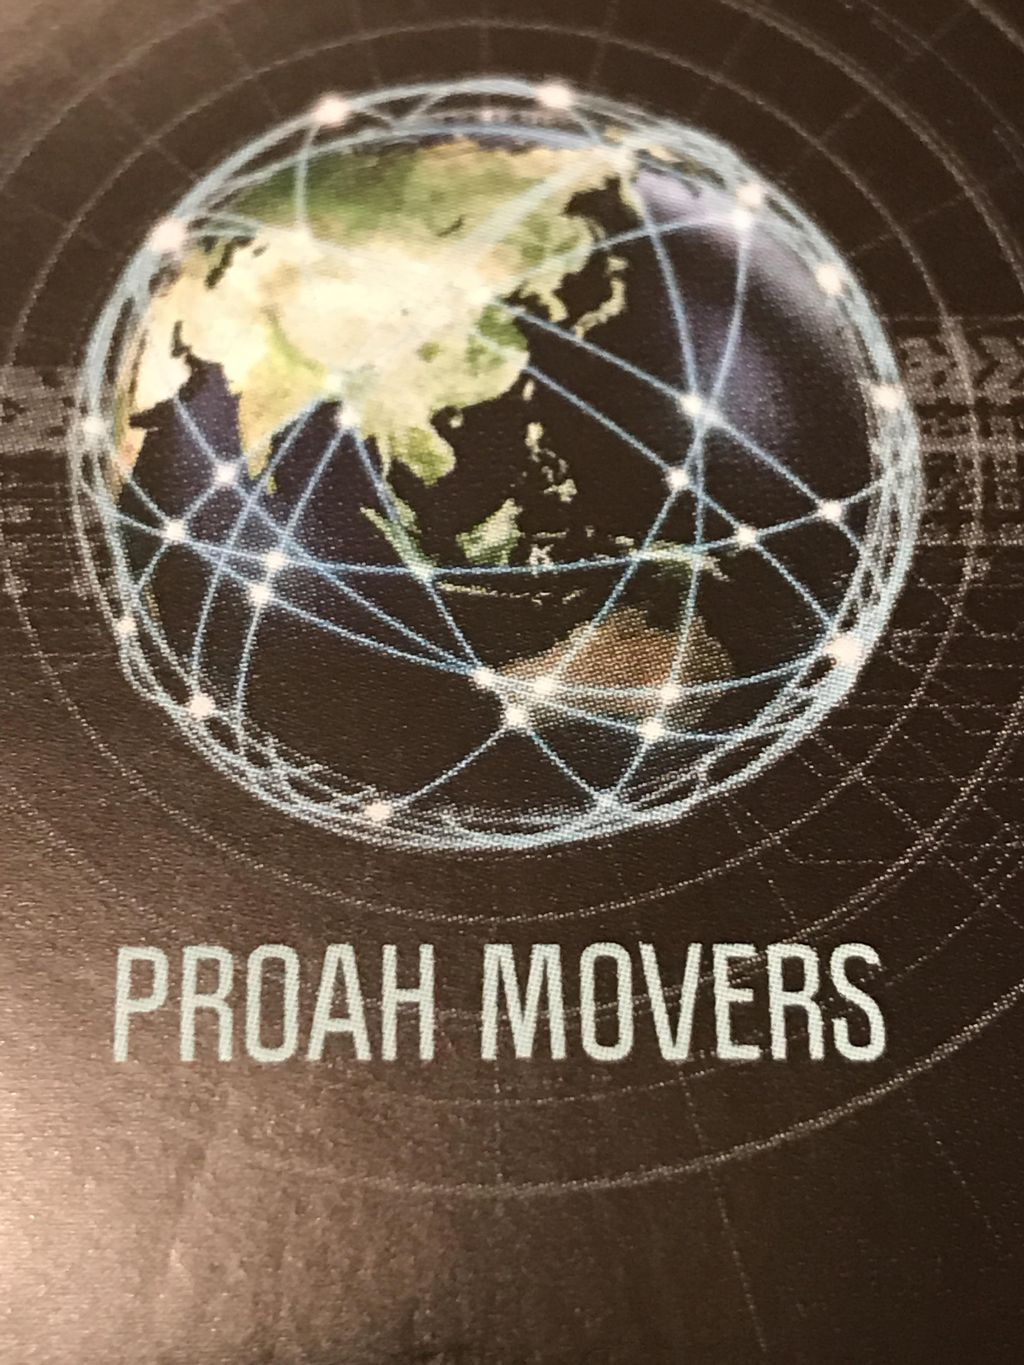 PROAH MOVERS